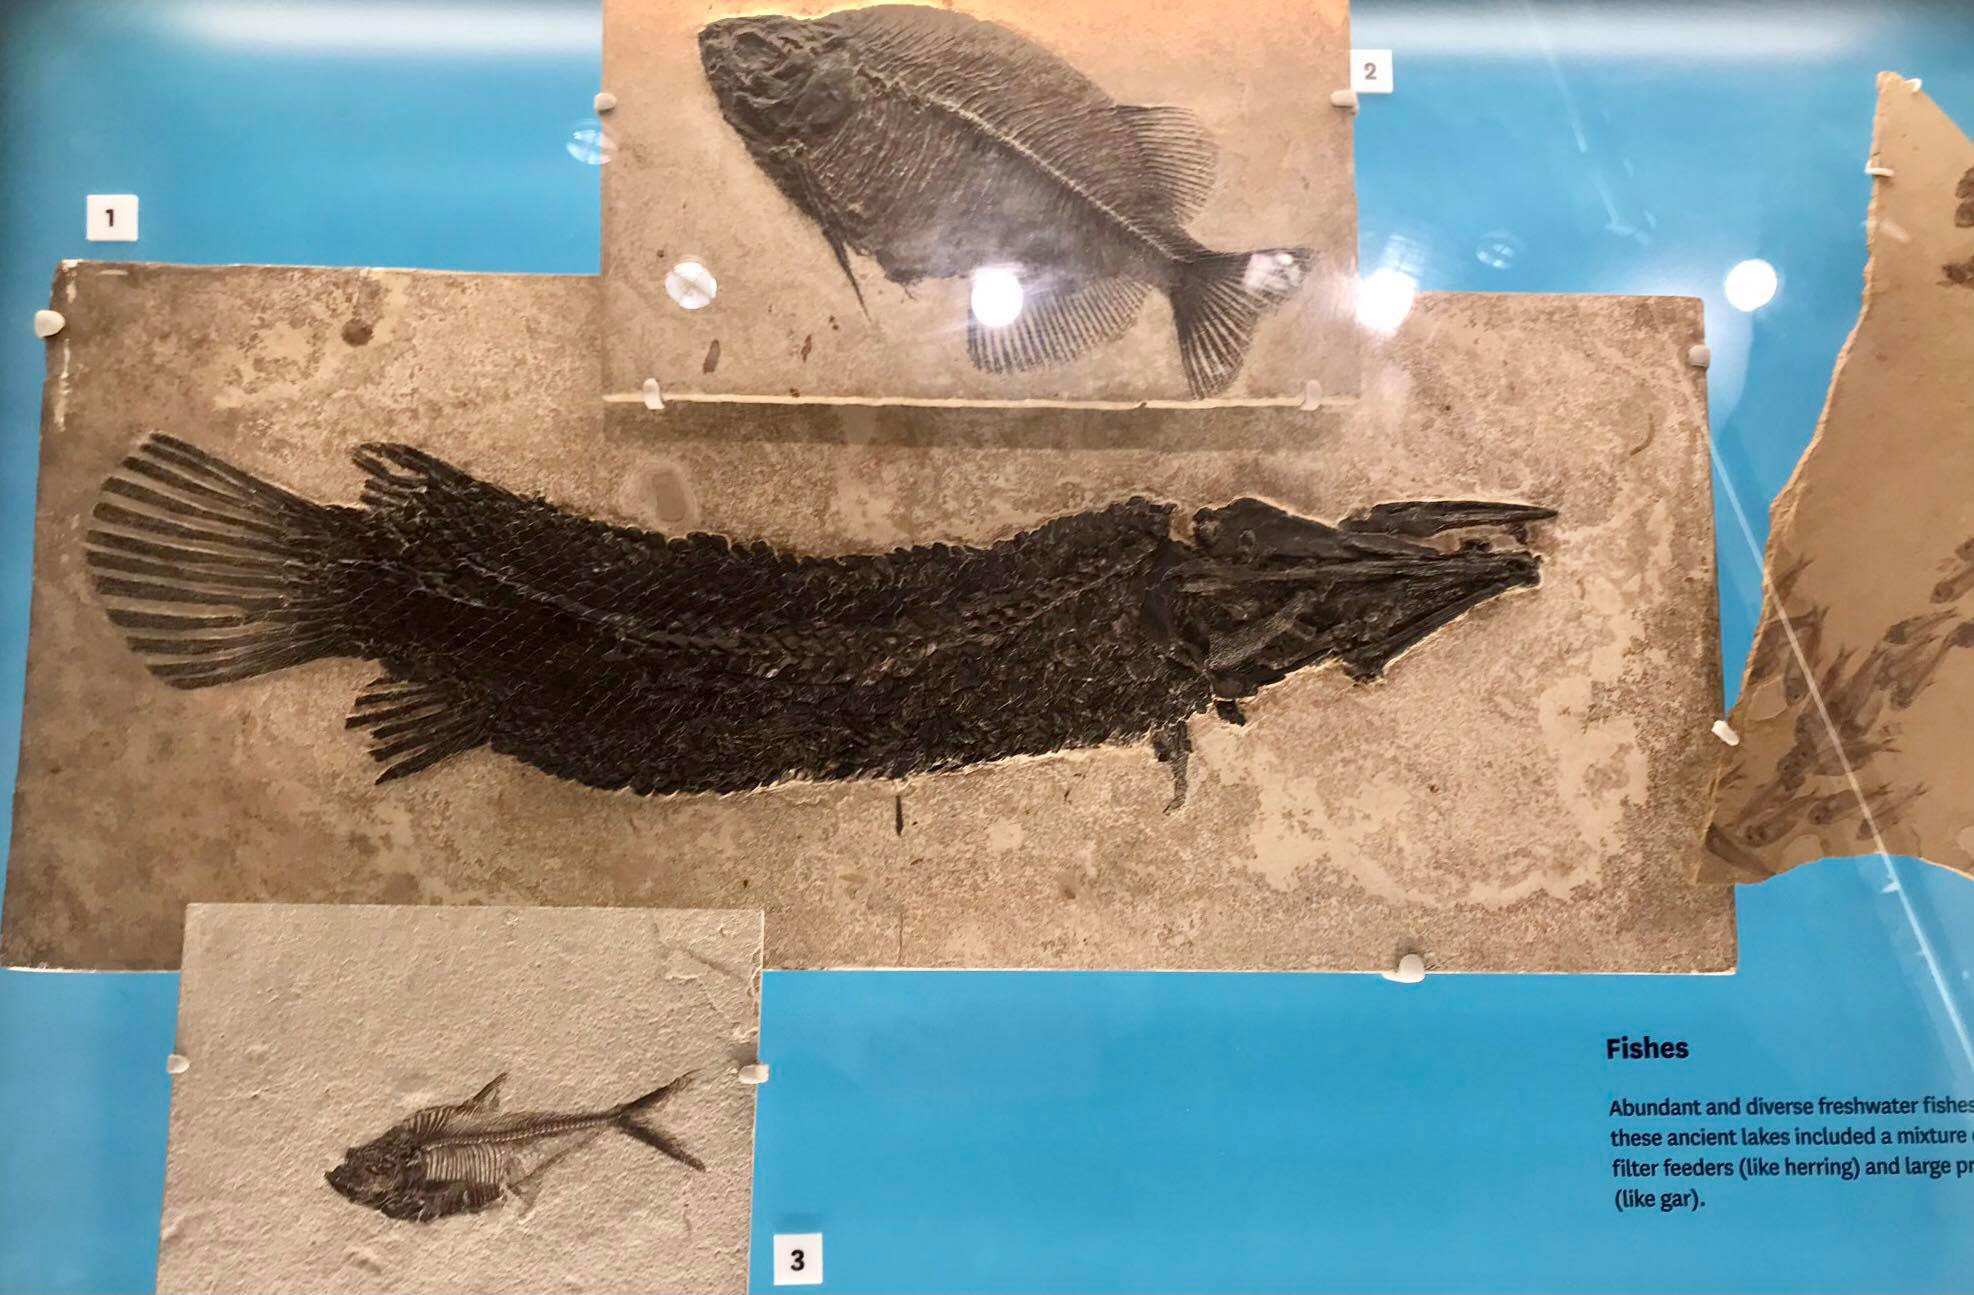 display showing fossilized gar with 2 other fossil fish